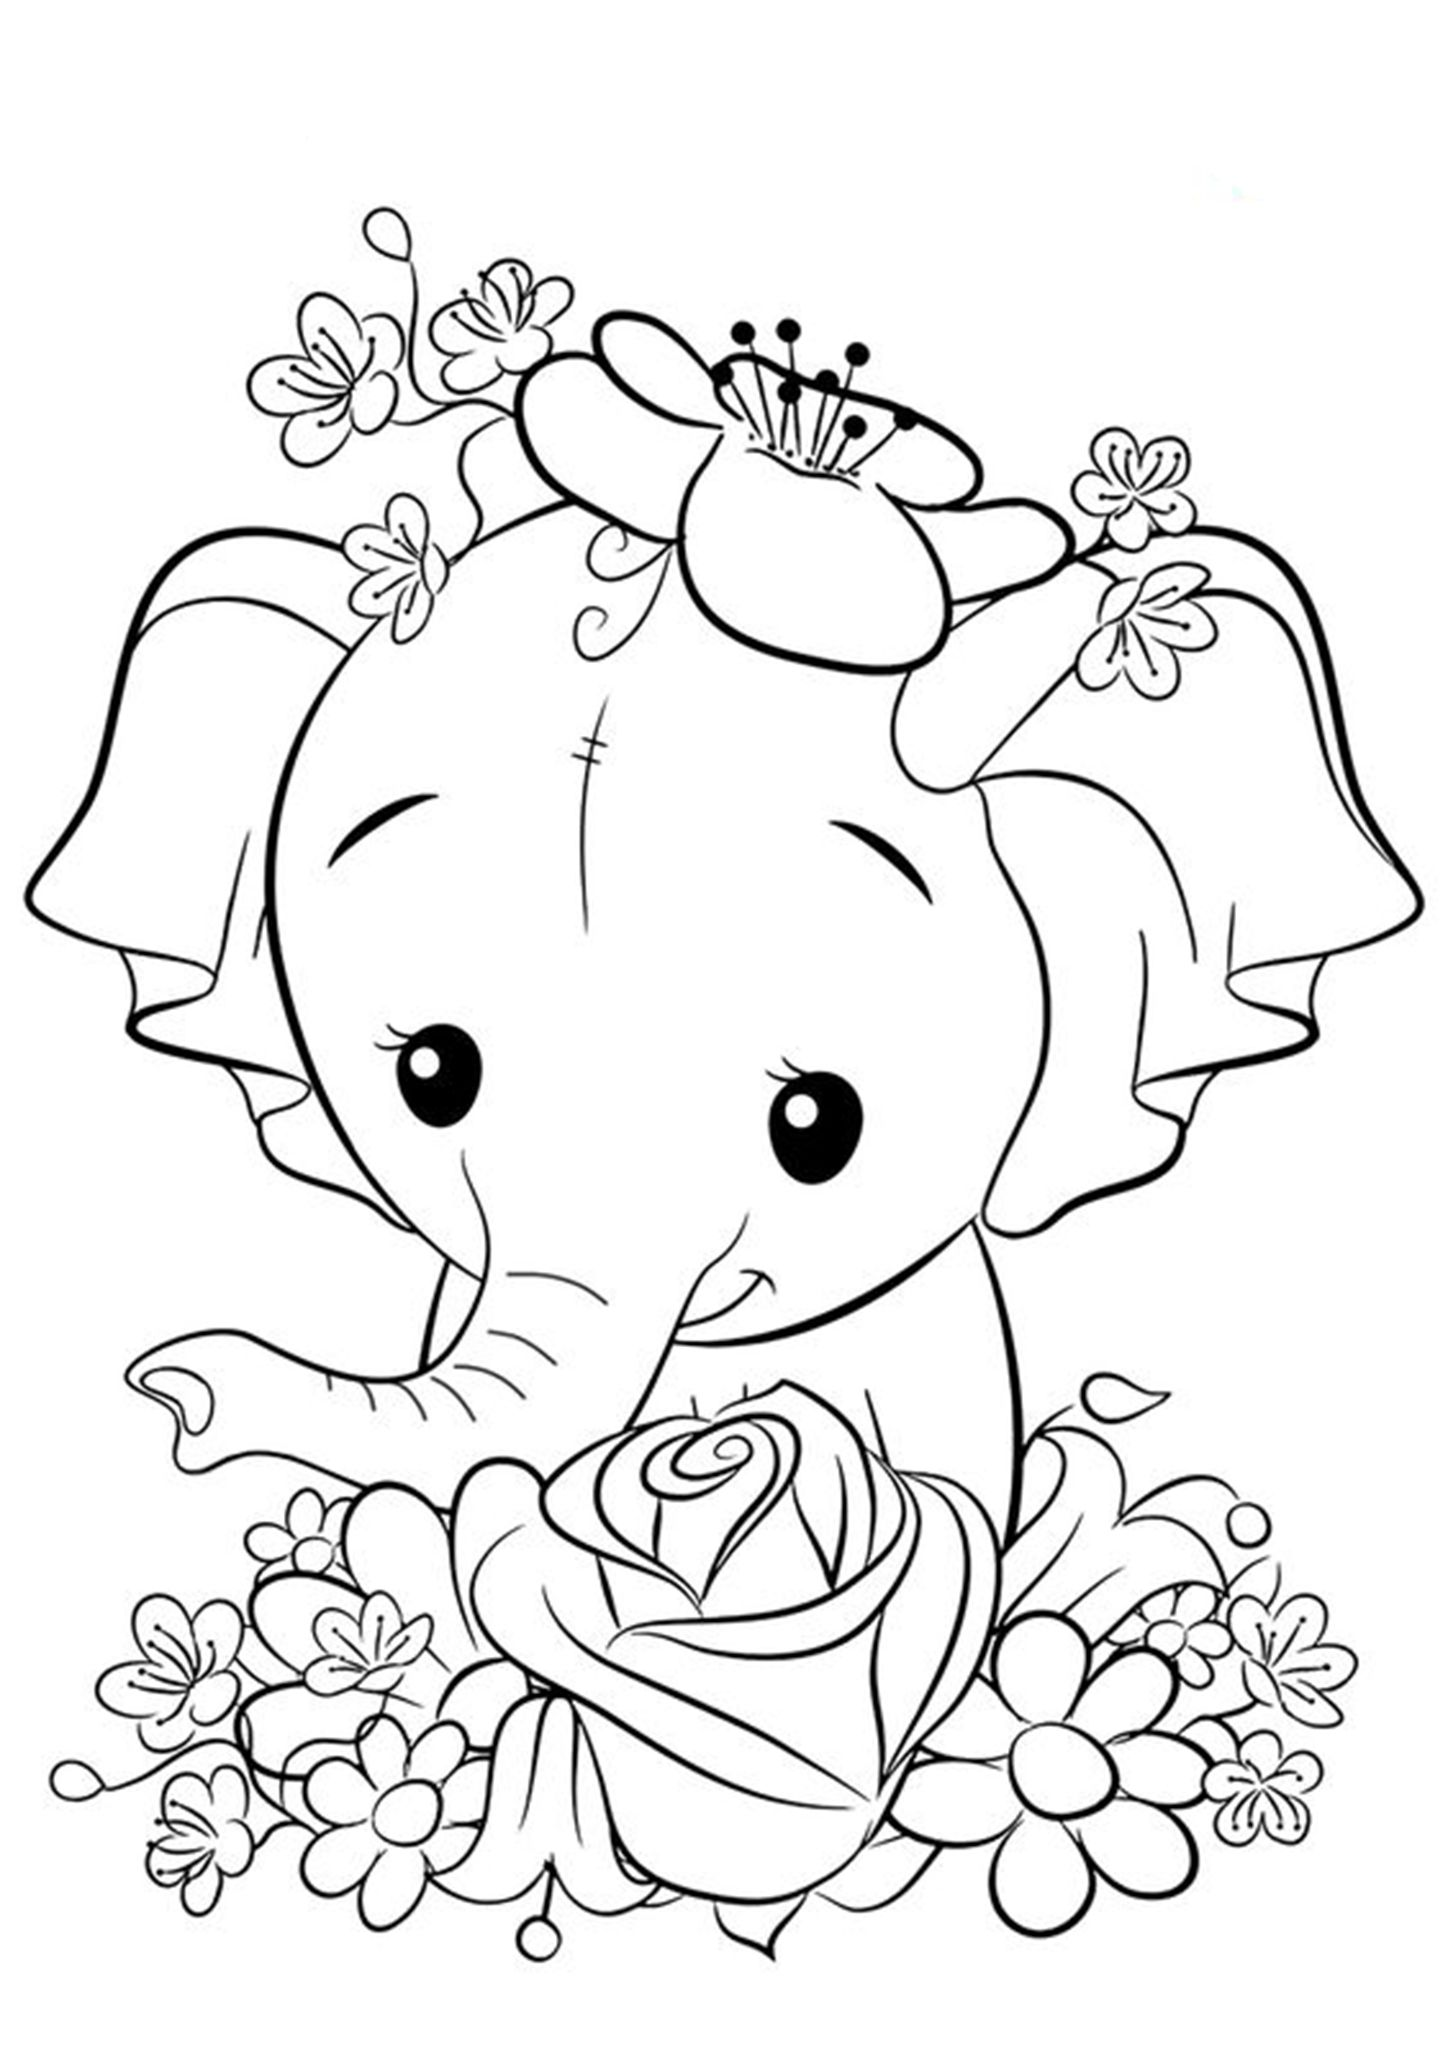 Free Easy To Print Elephant Coloring Pages Unicorn Coloring Pages Elephant Coloring Page Animal Coloring Pages